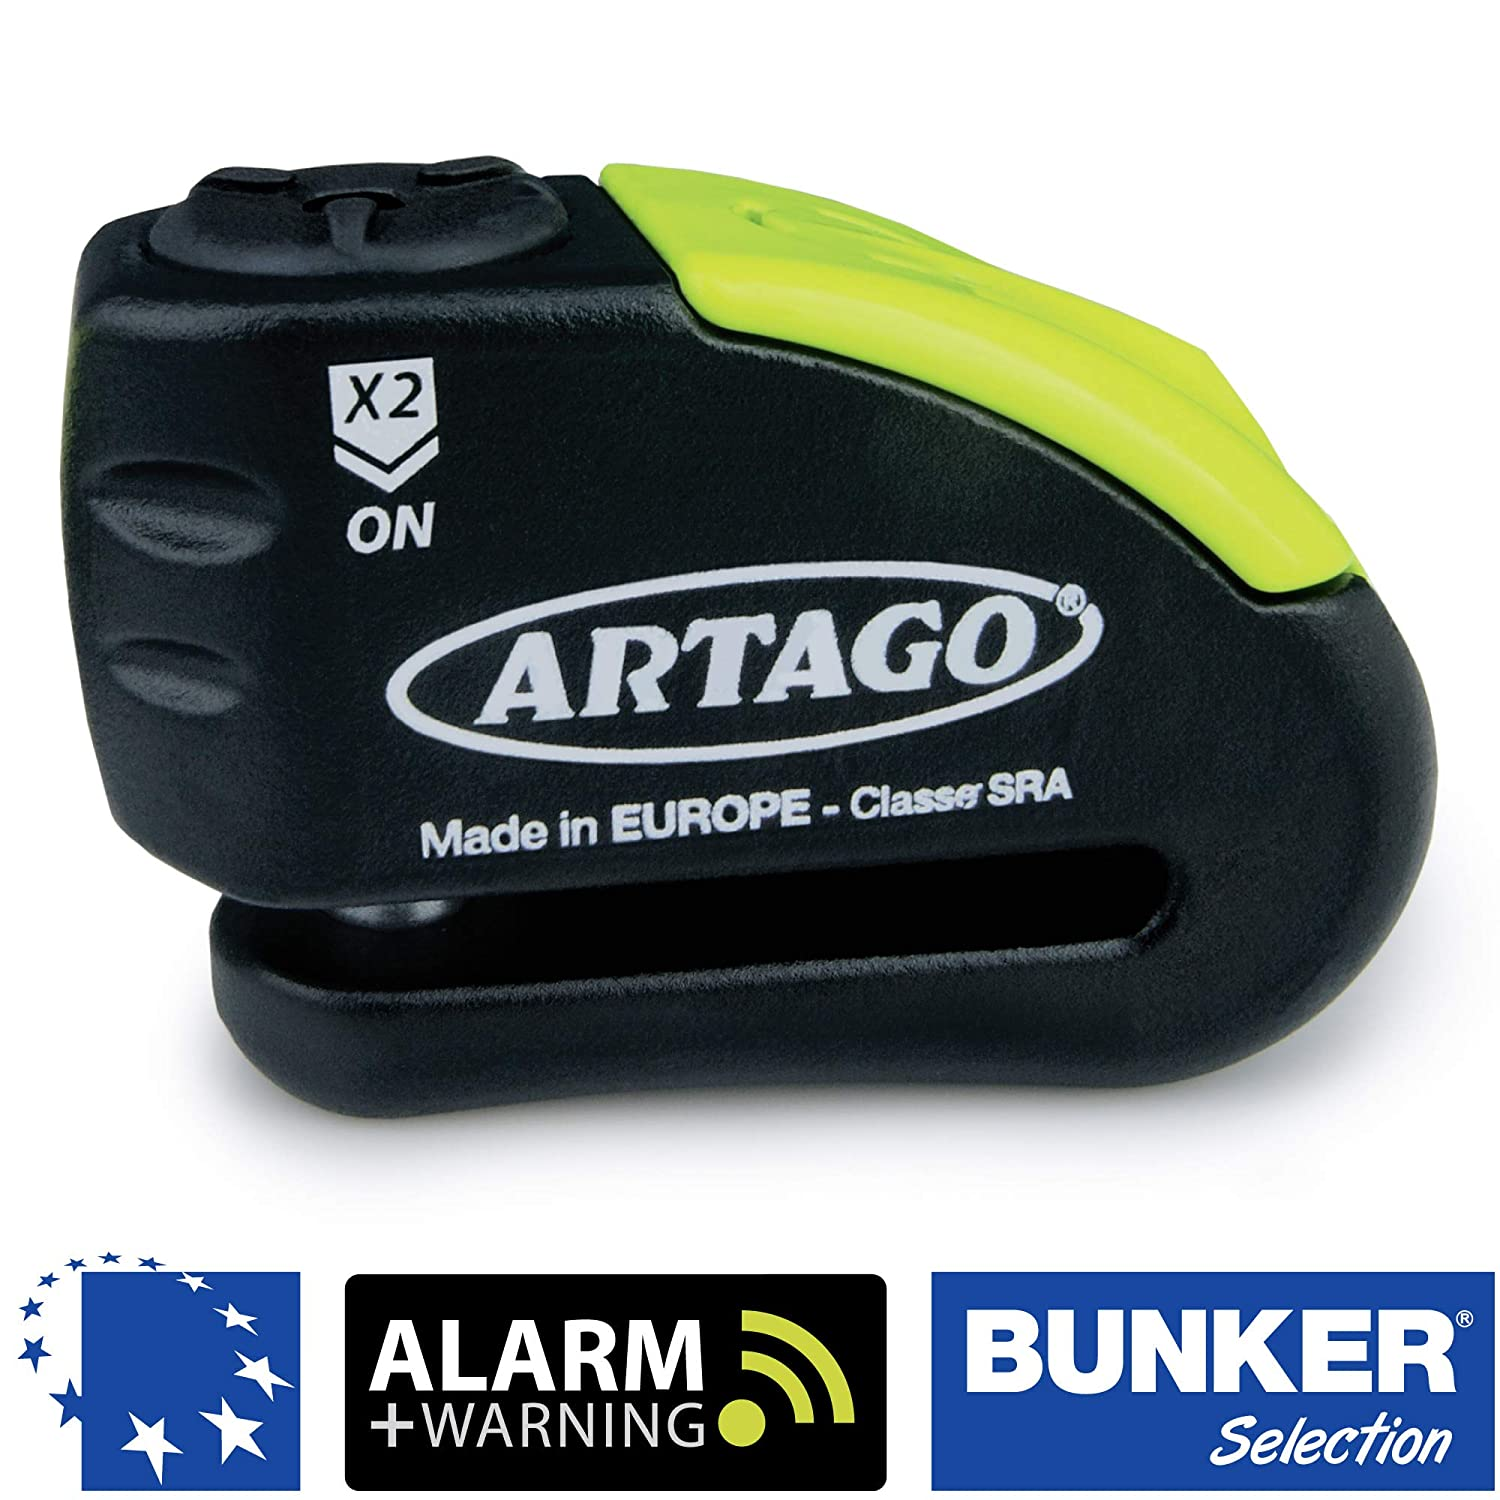 Artago 30X14 Candado Antirrobo Disco con Alarma + Warning 120 dB Alta Gama, ø14 Doble Cierre, Homologado Sra y Sold Secure Gold, Bunker Selection, mm